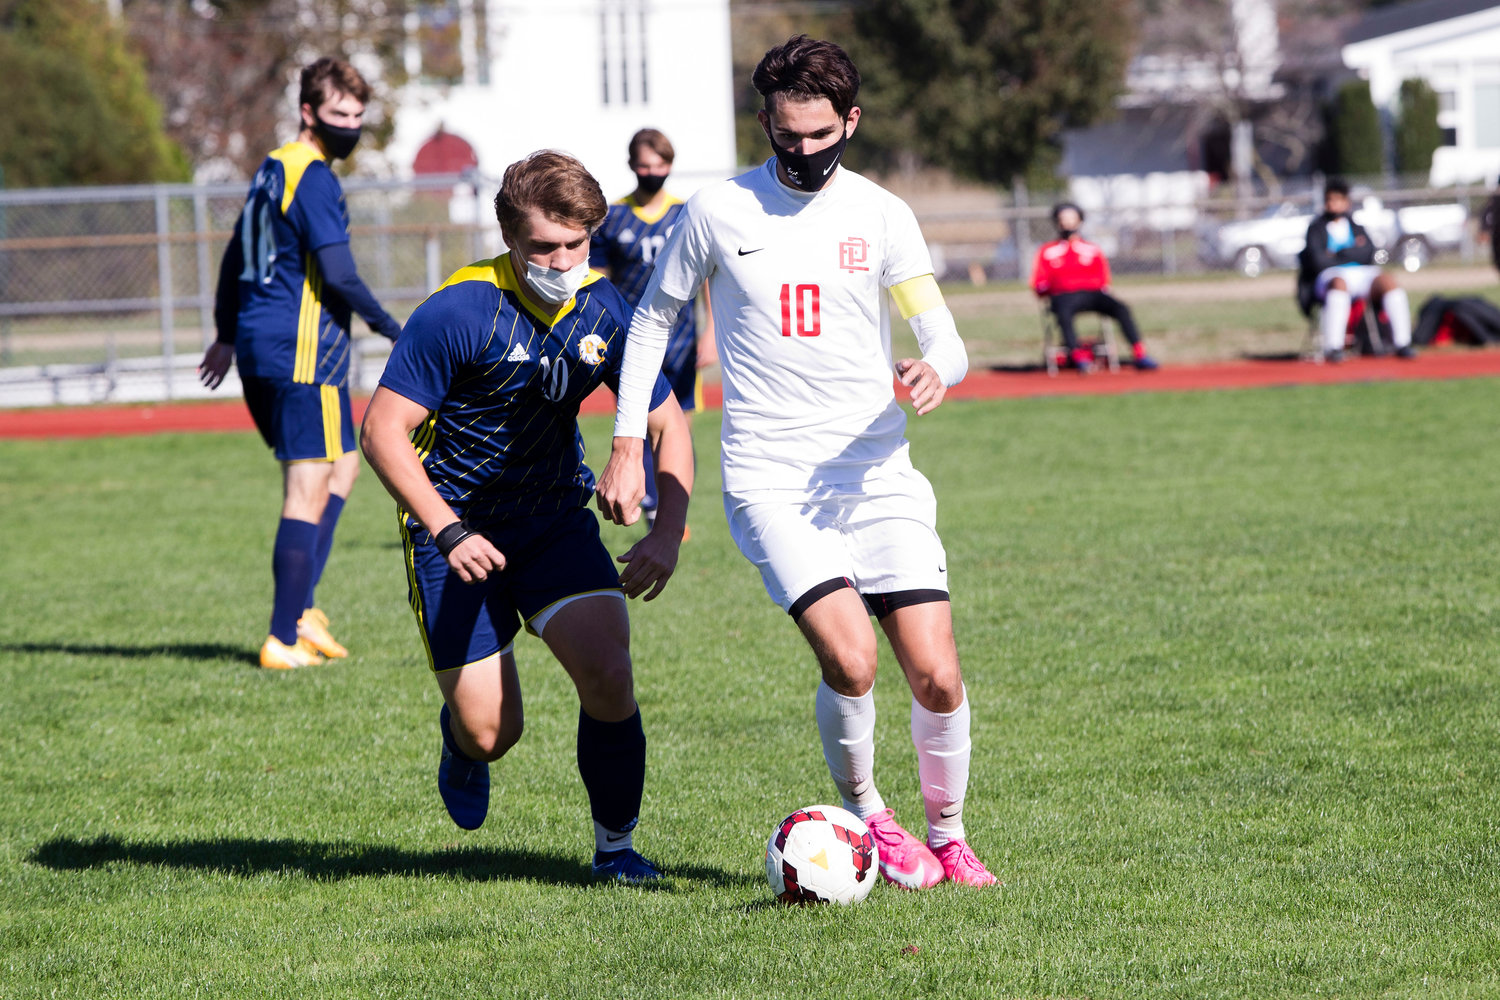 Colin Capelo controls a pass at mid-field.